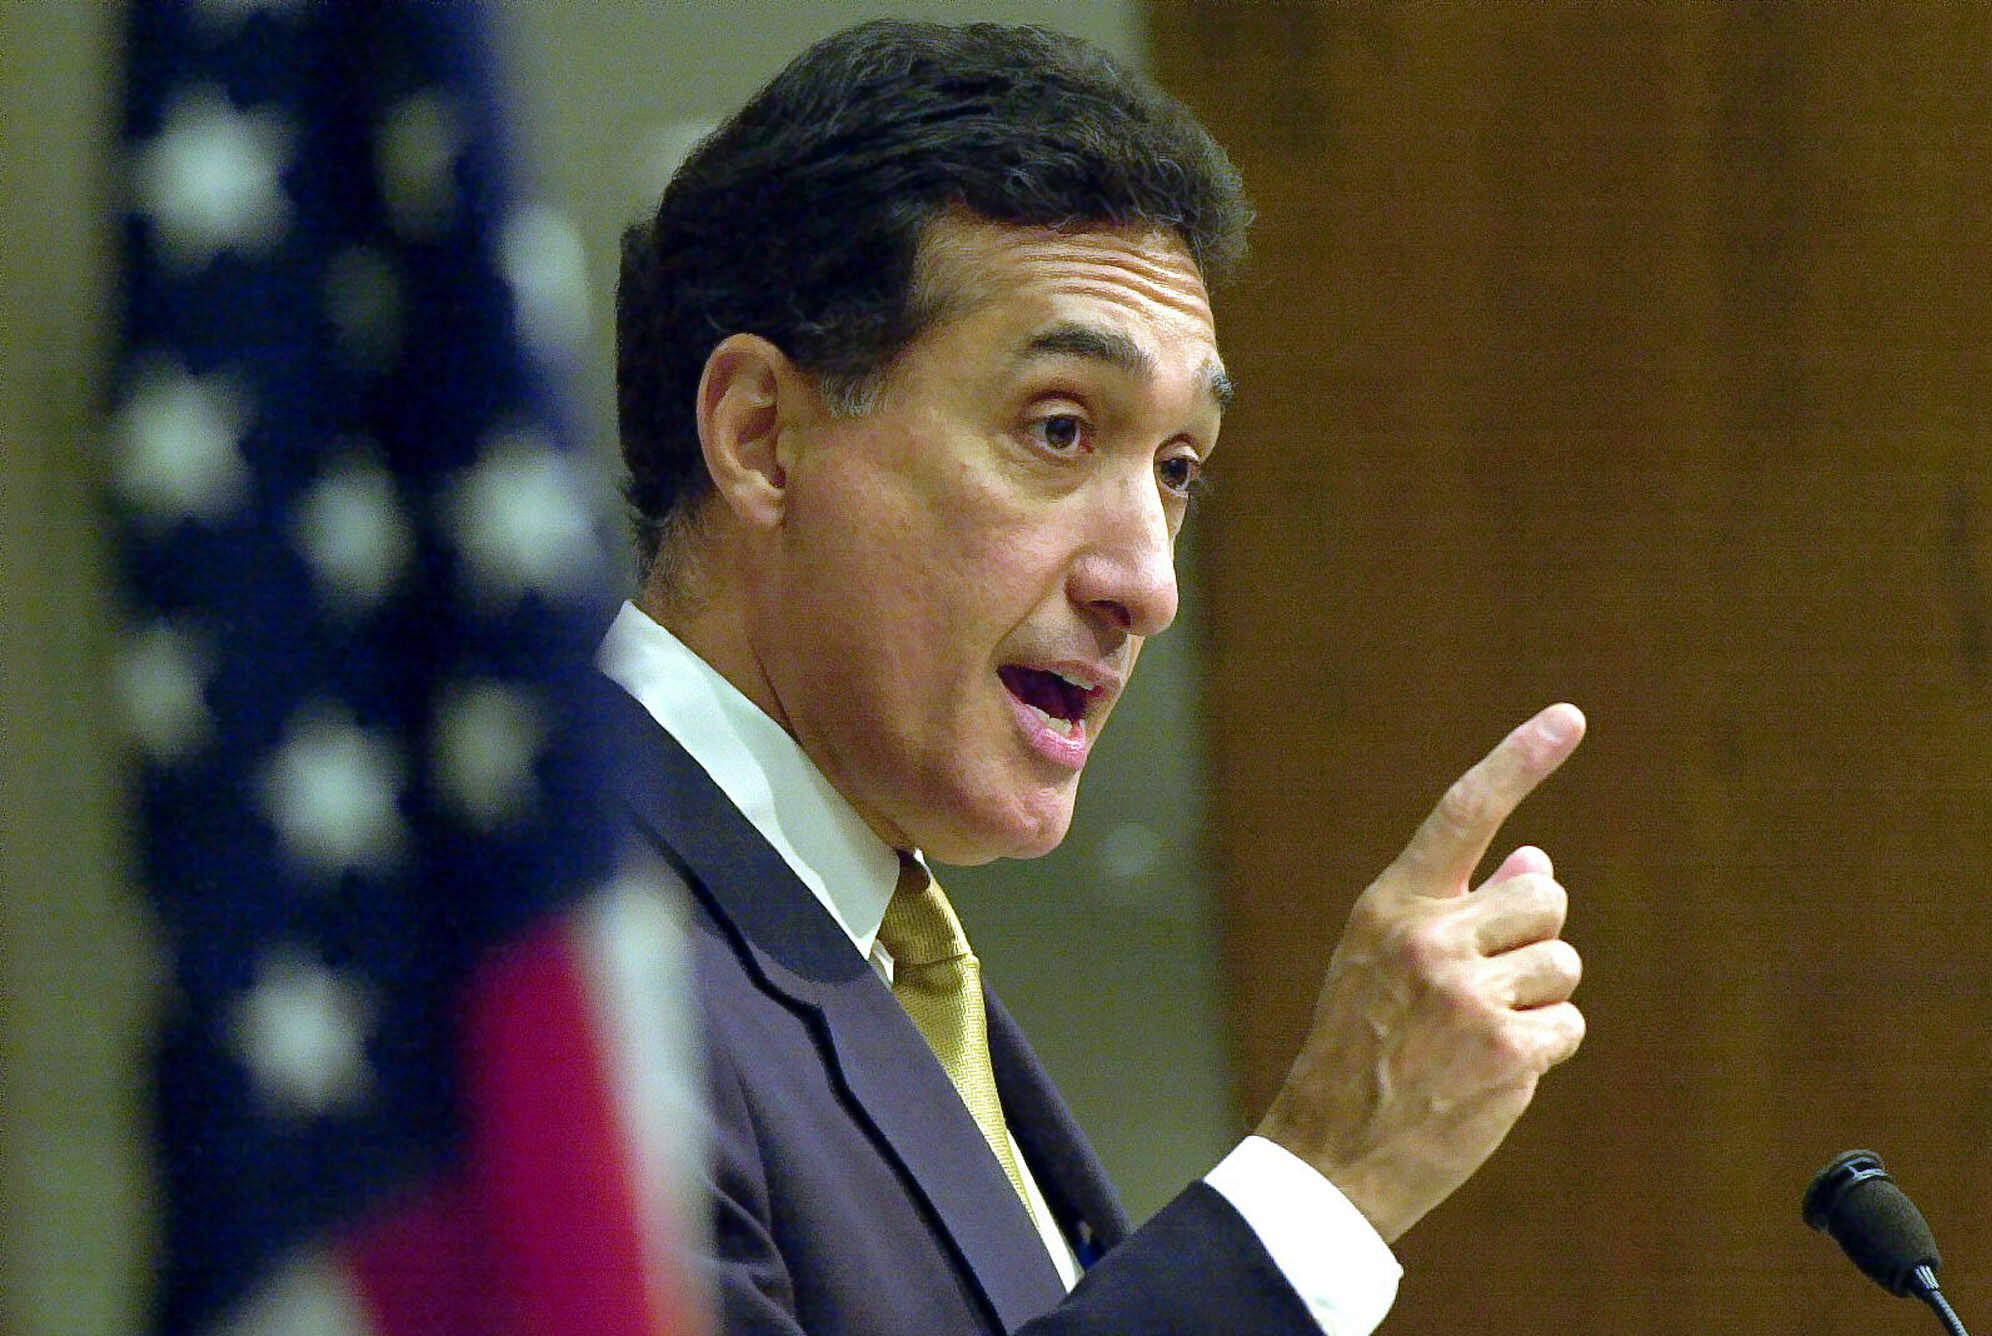 Former Secretary of Housing and Urban Development Henry Cisneros speaks to a group of South Dallas business leaders in Dallas, Tuesday, Sept. 19, 2000. Cisneros touted the New America Alliance, a national group of wealthy and influential Hispanics working toward community betterment. (AP Photo/LM Otero)